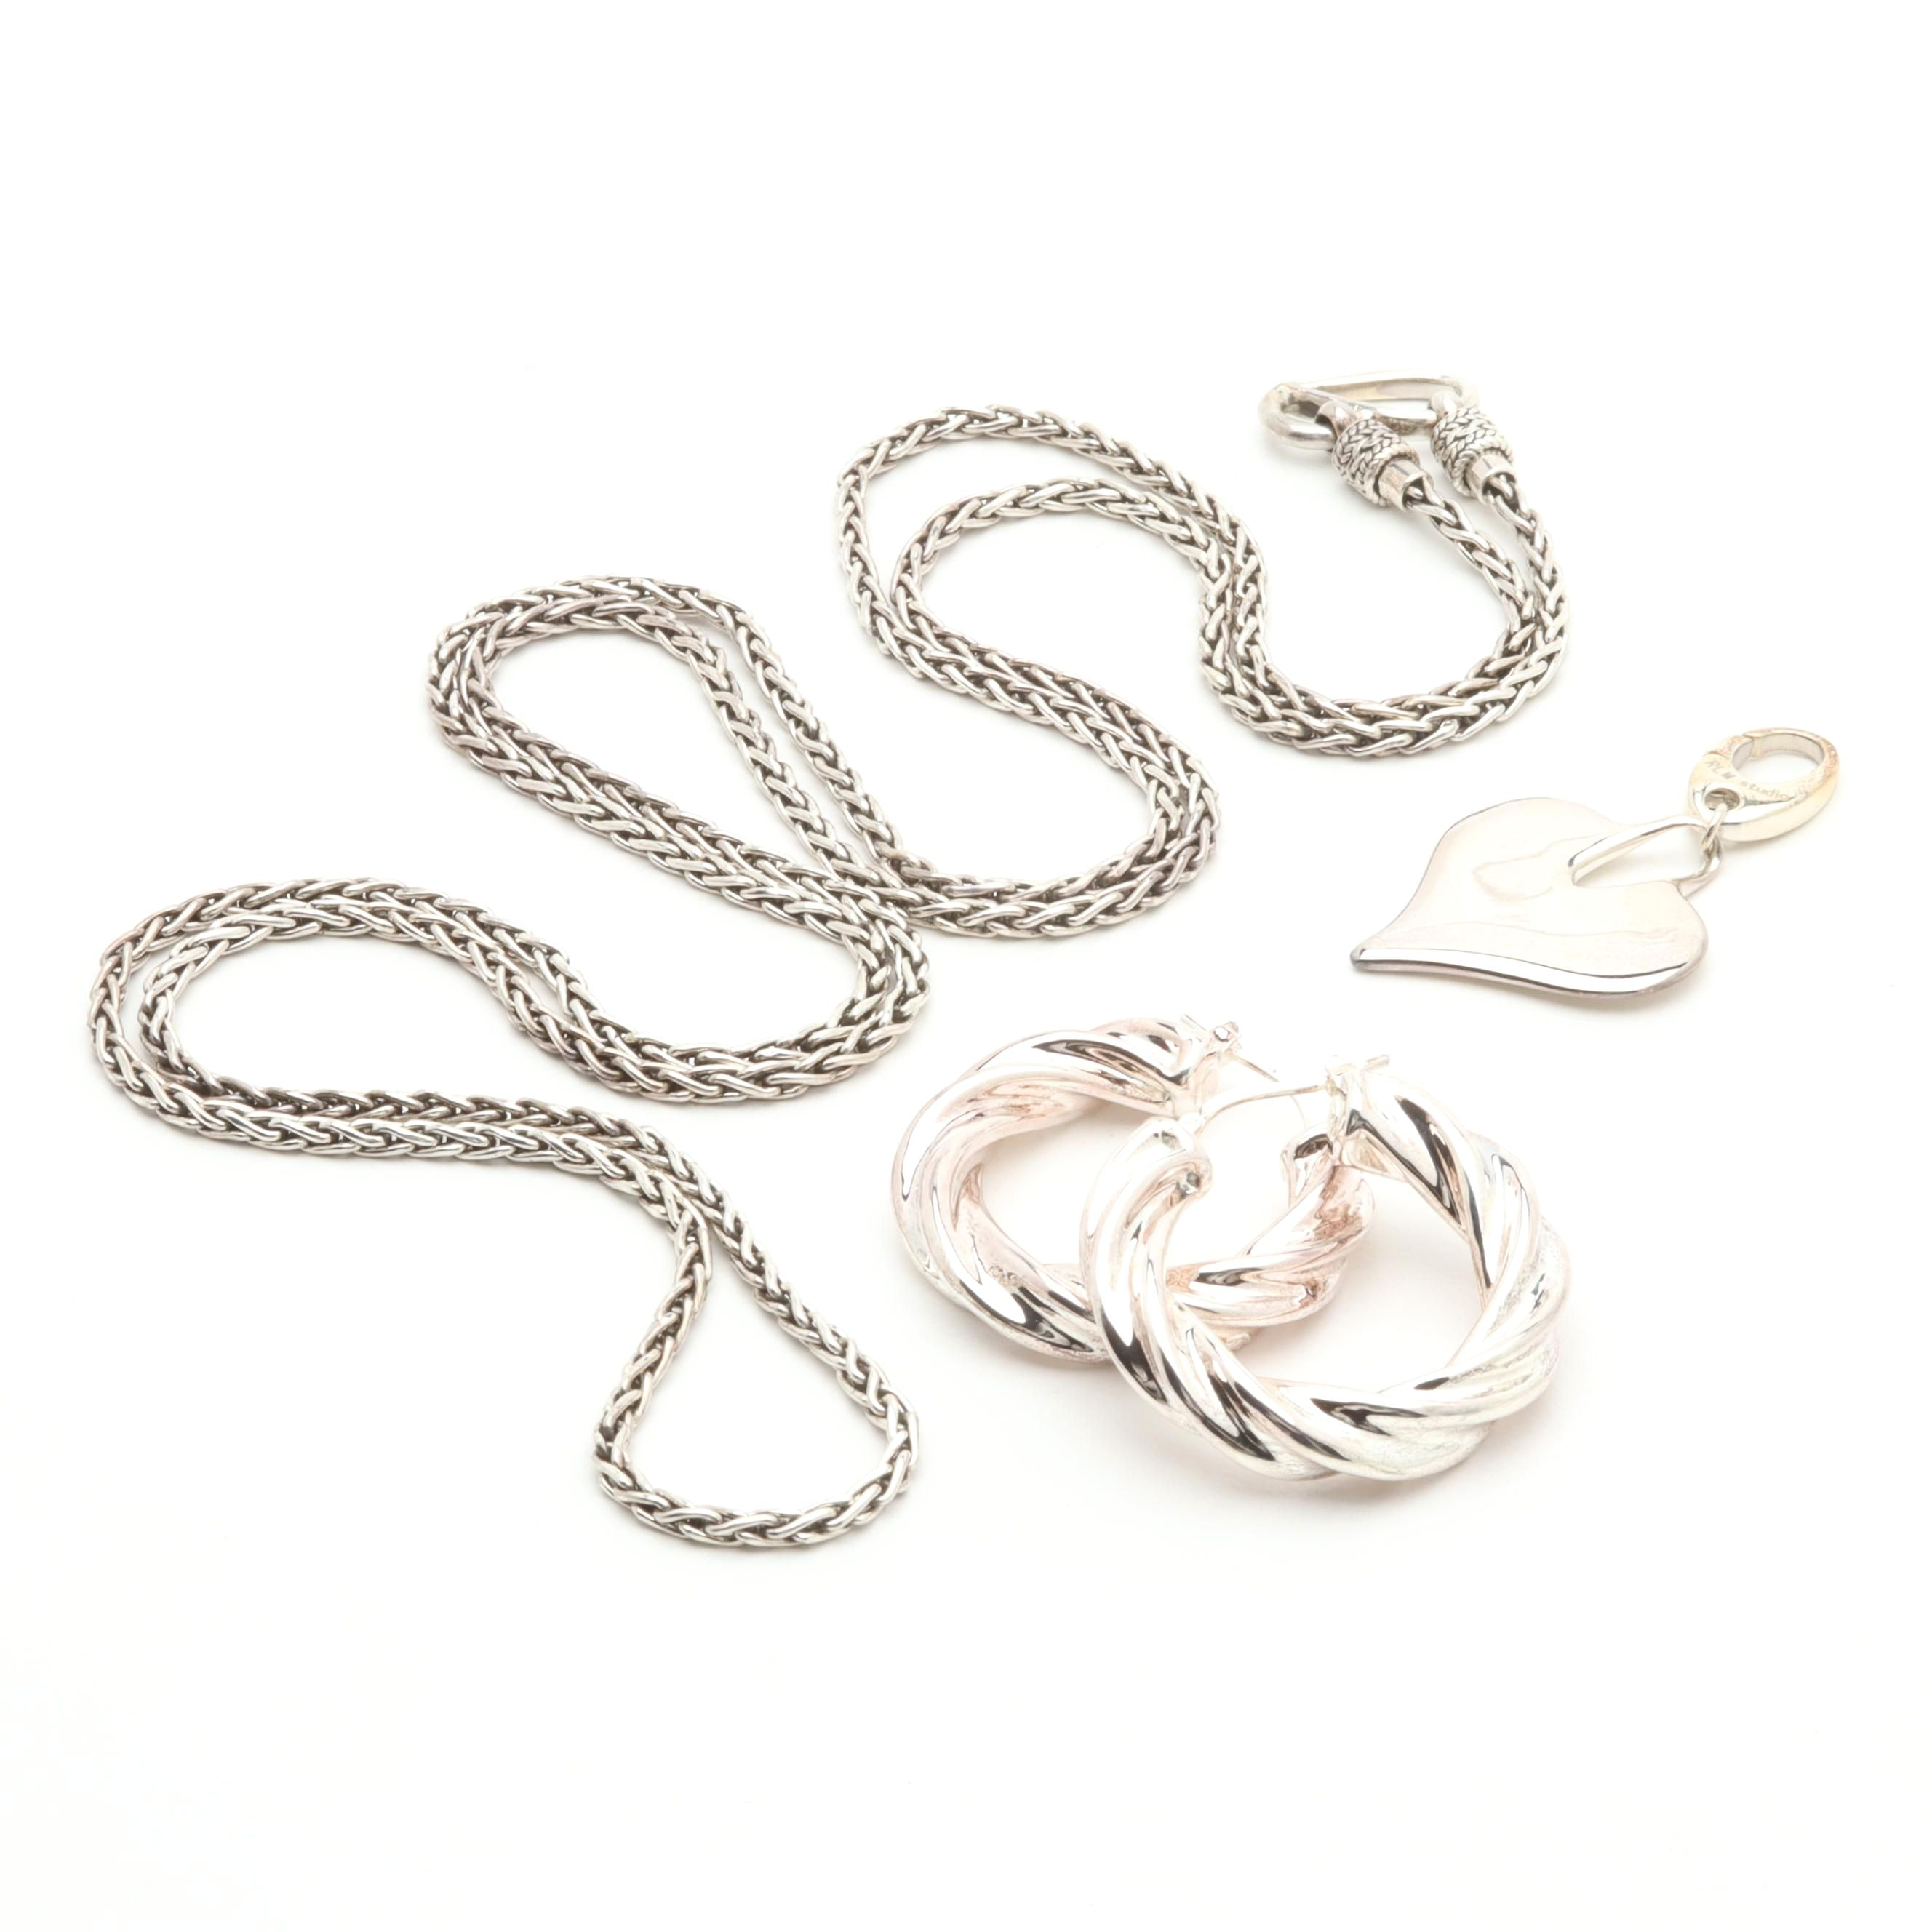 Sterling Silver Jewelry Including Suarti Necklace and Milor 950 Silver Earrings